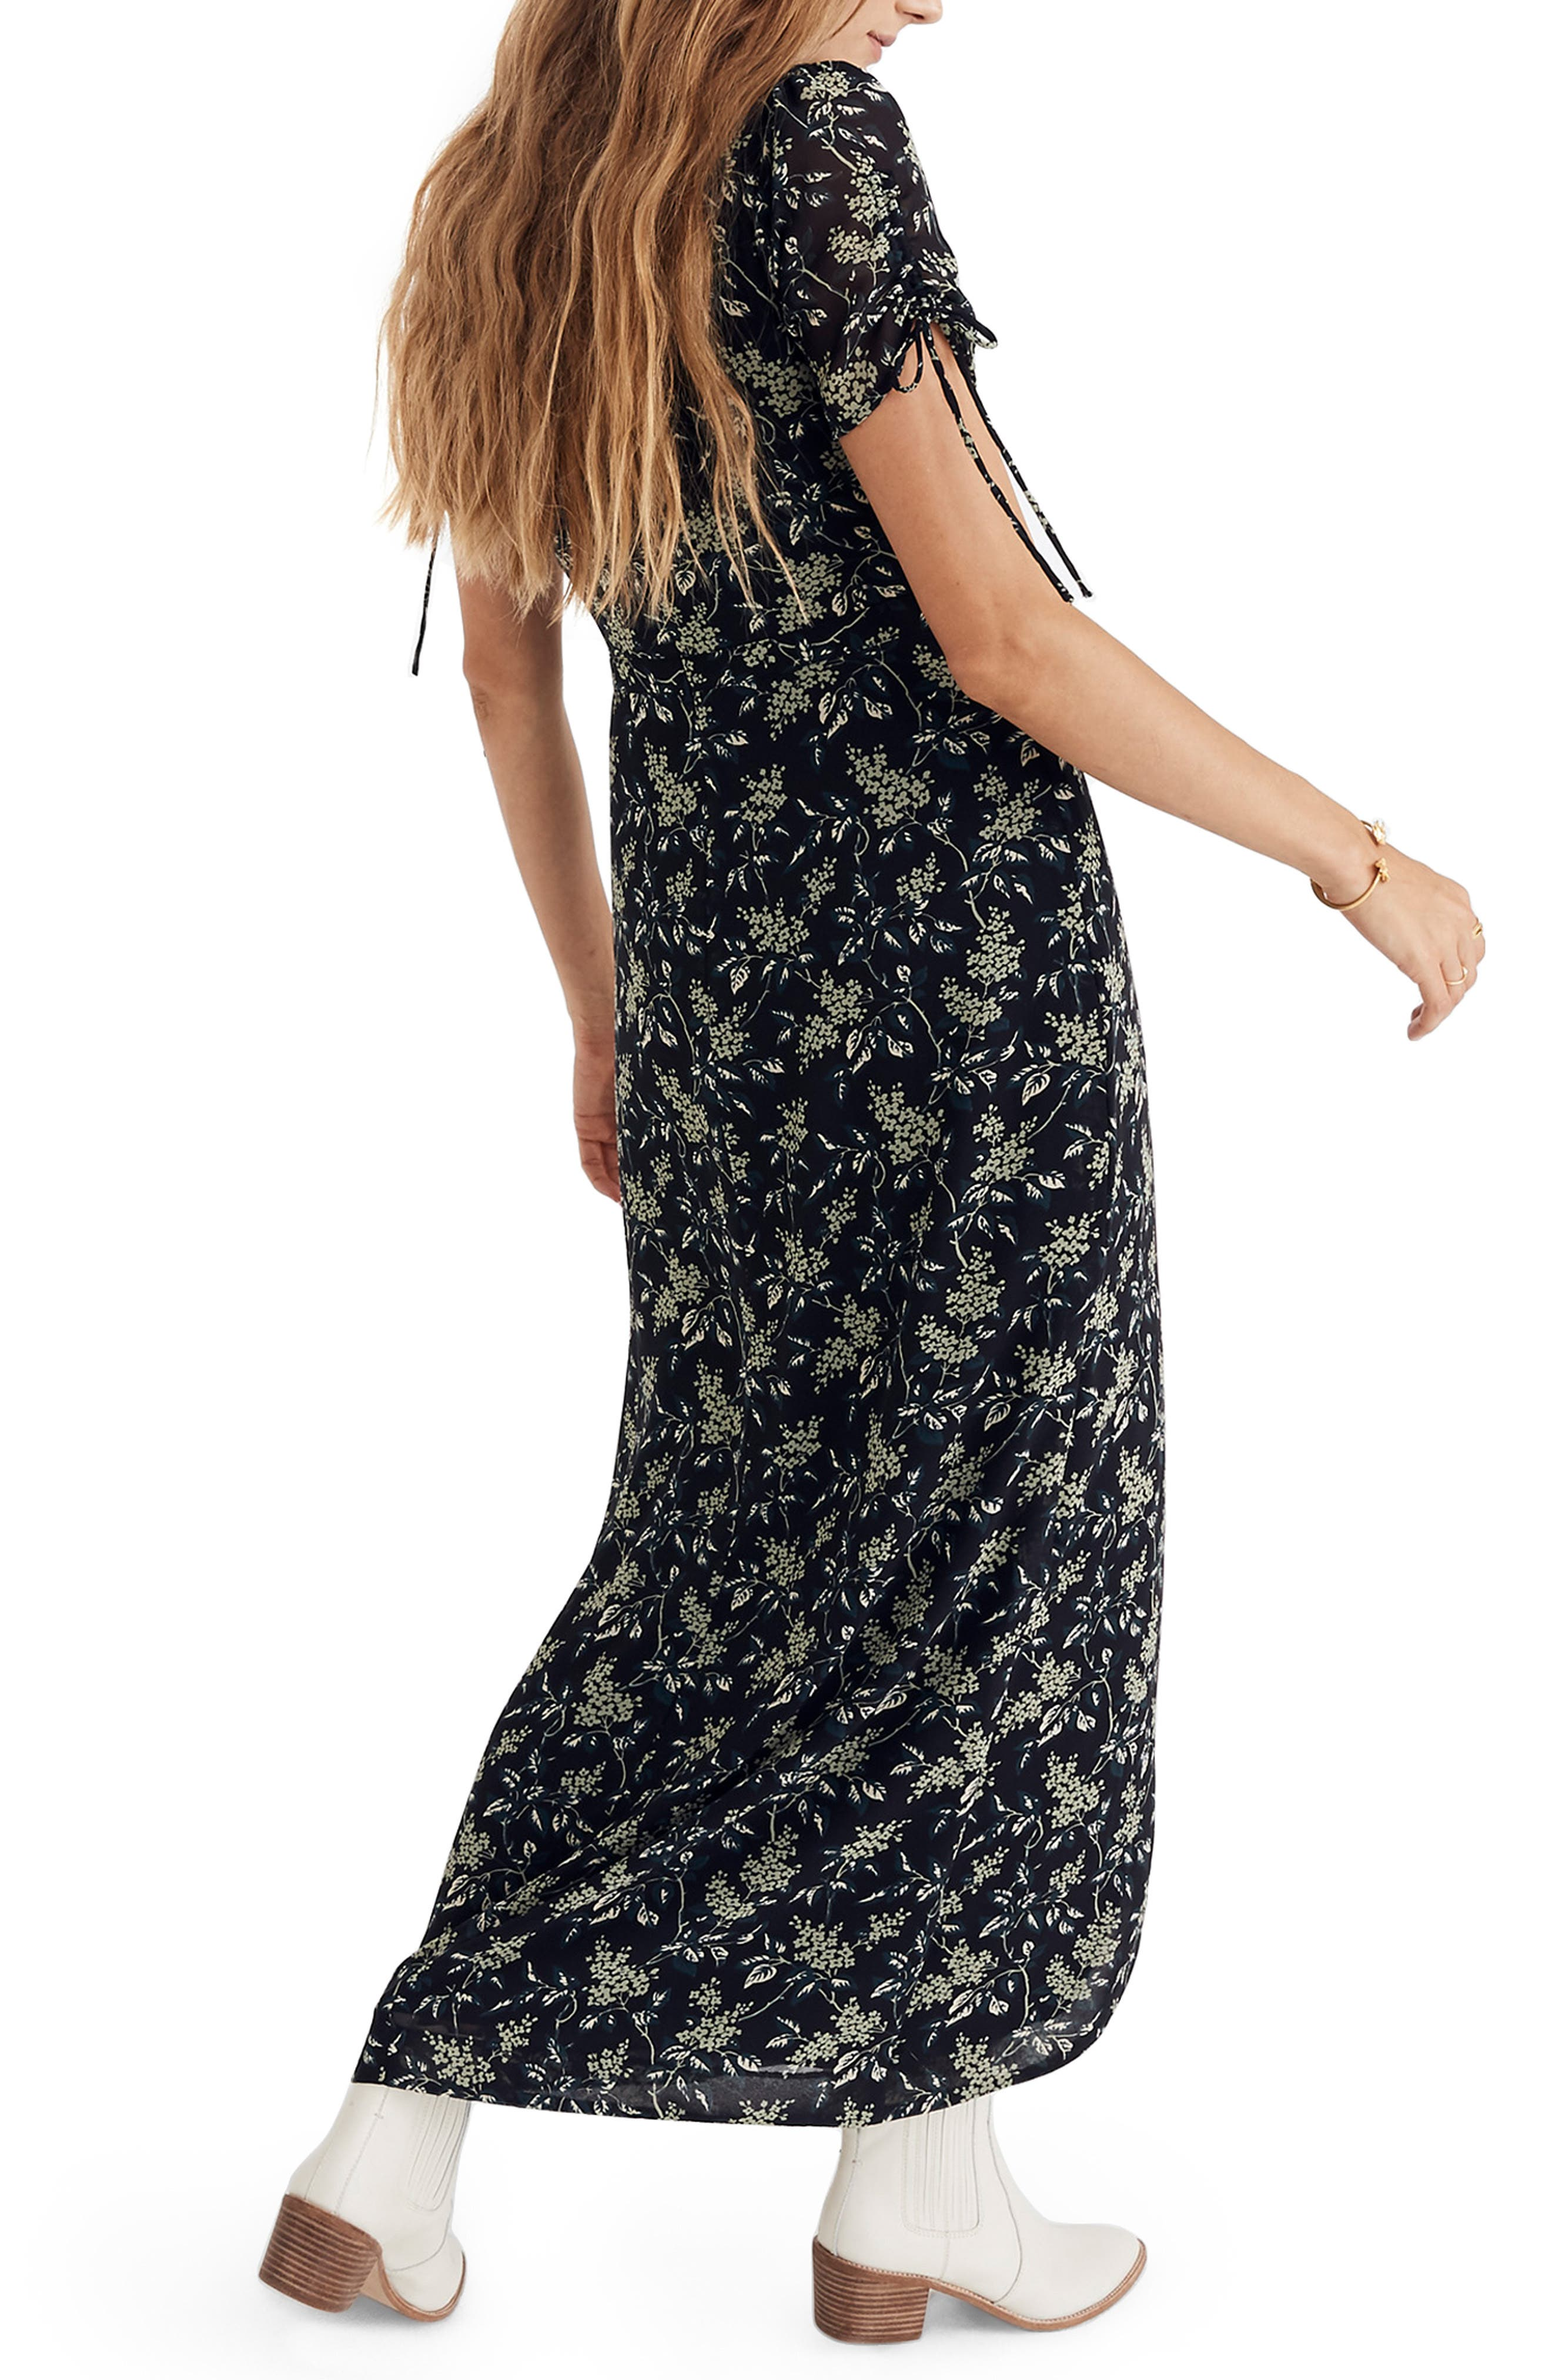 Tulip Sleeve Maxi Dress,                             Alternate thumbnail 2, color,                             CLASSIC BLACK